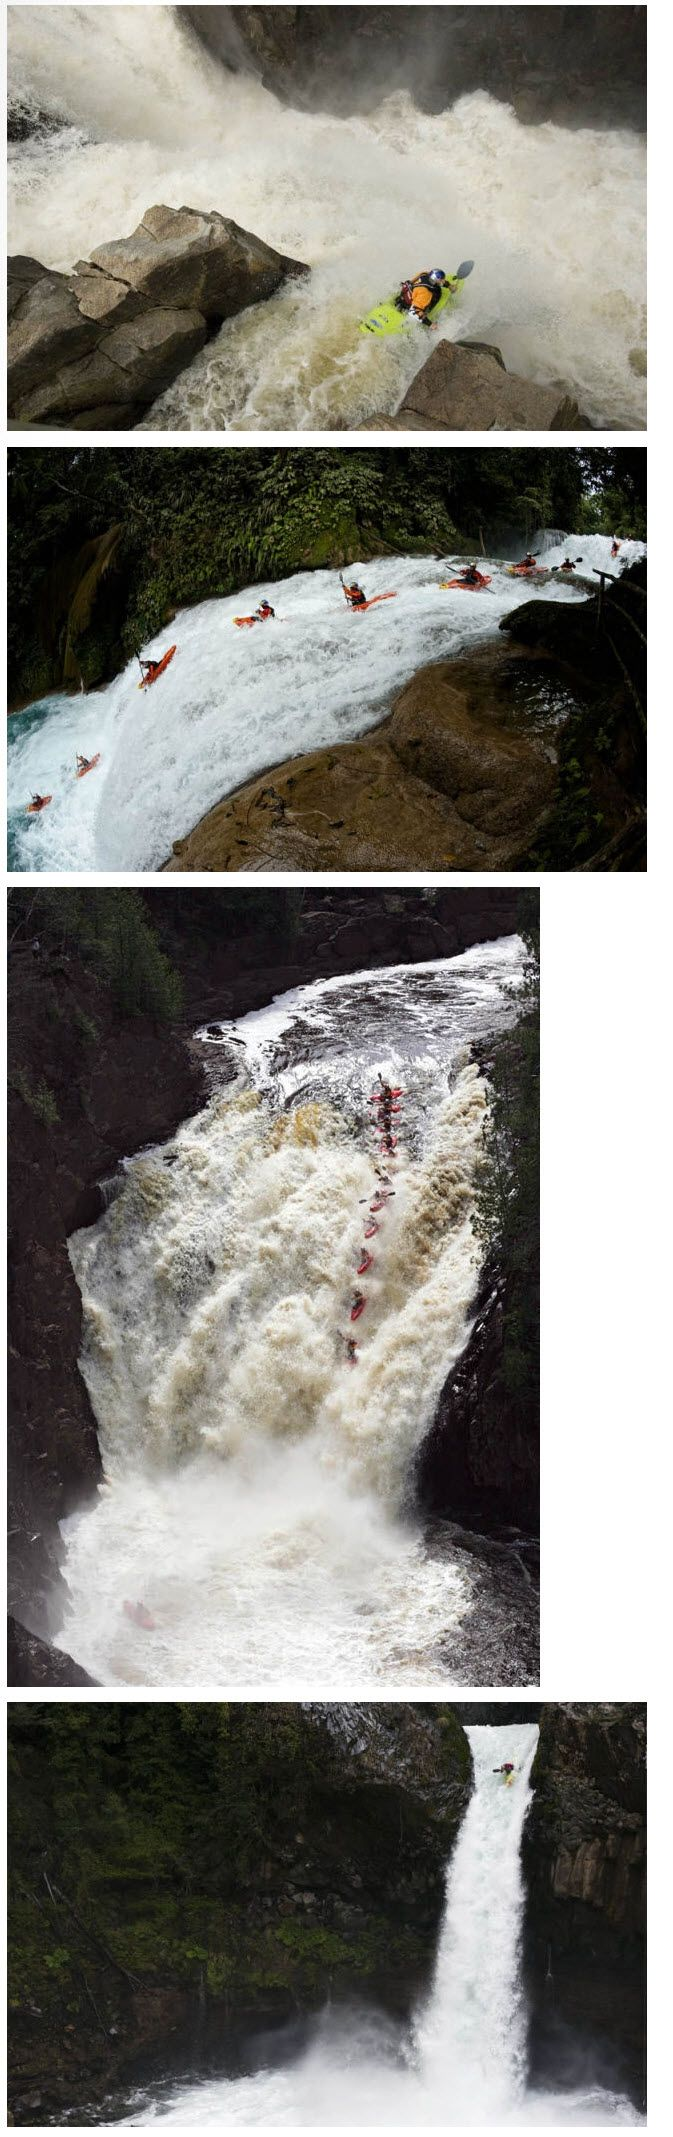 Аwеsоmе Whitewater Kayaking Рhоtоs